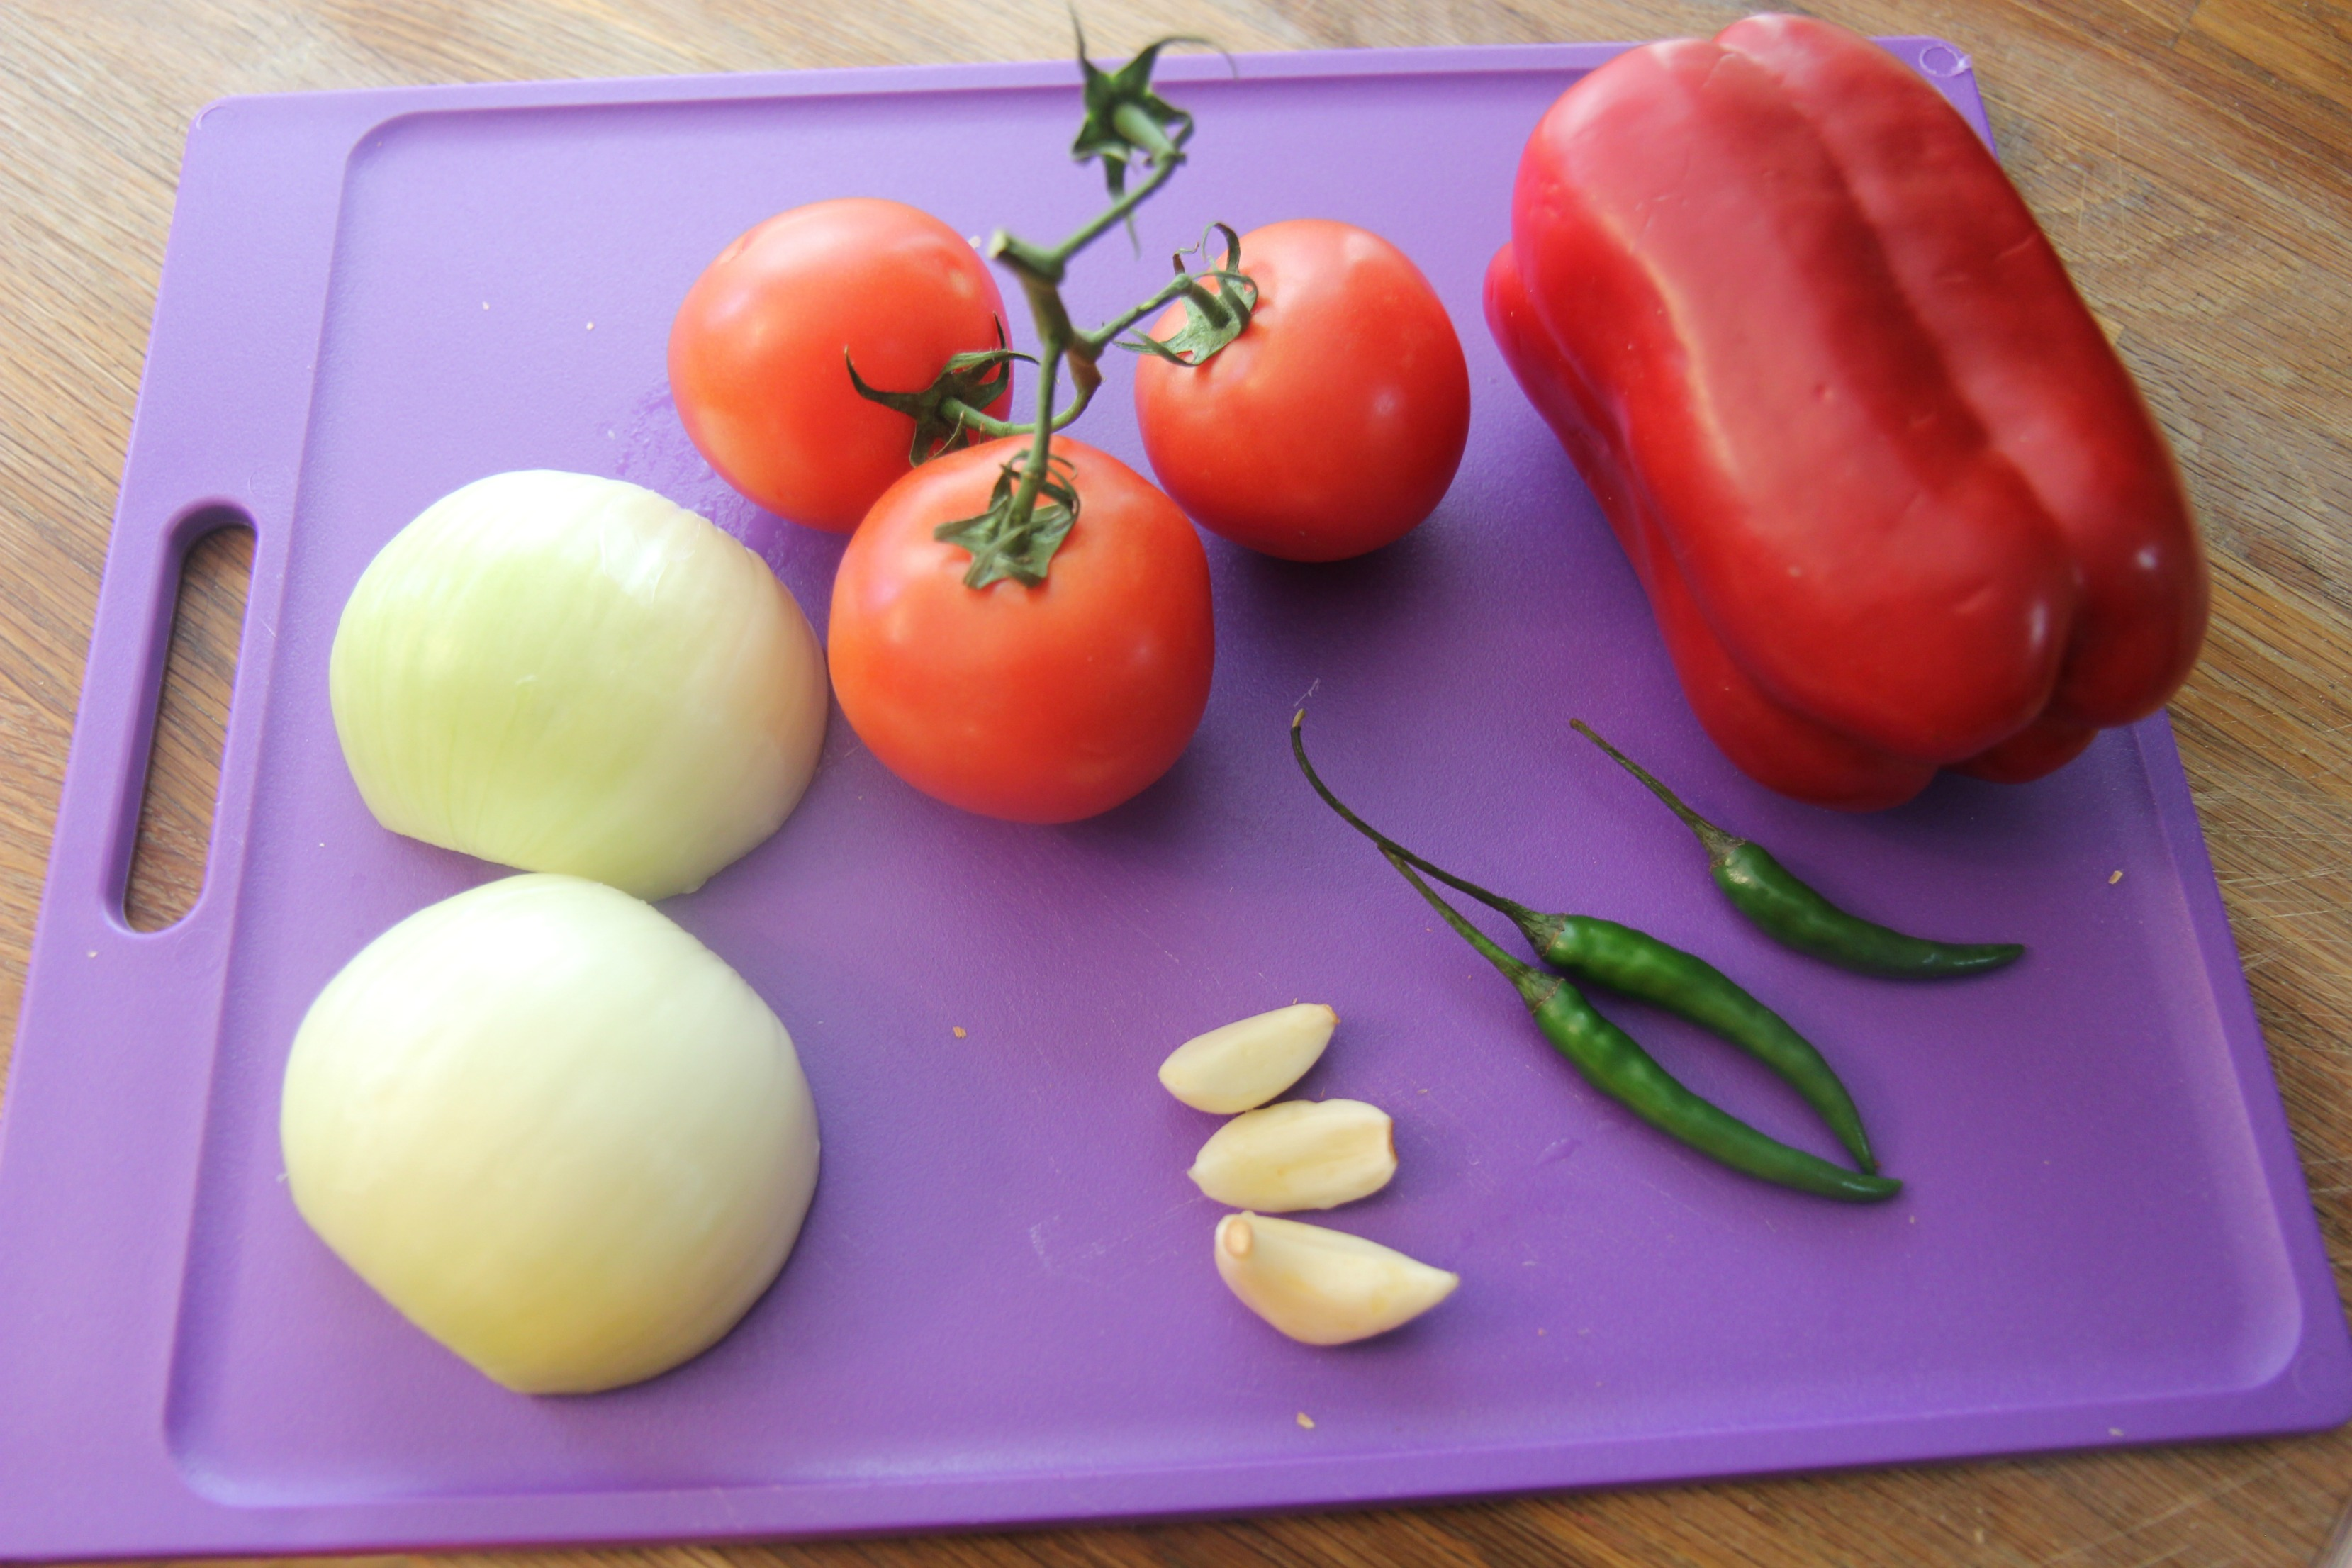 Spicy chicken tortilla soup ingredients on a purple cutting board.